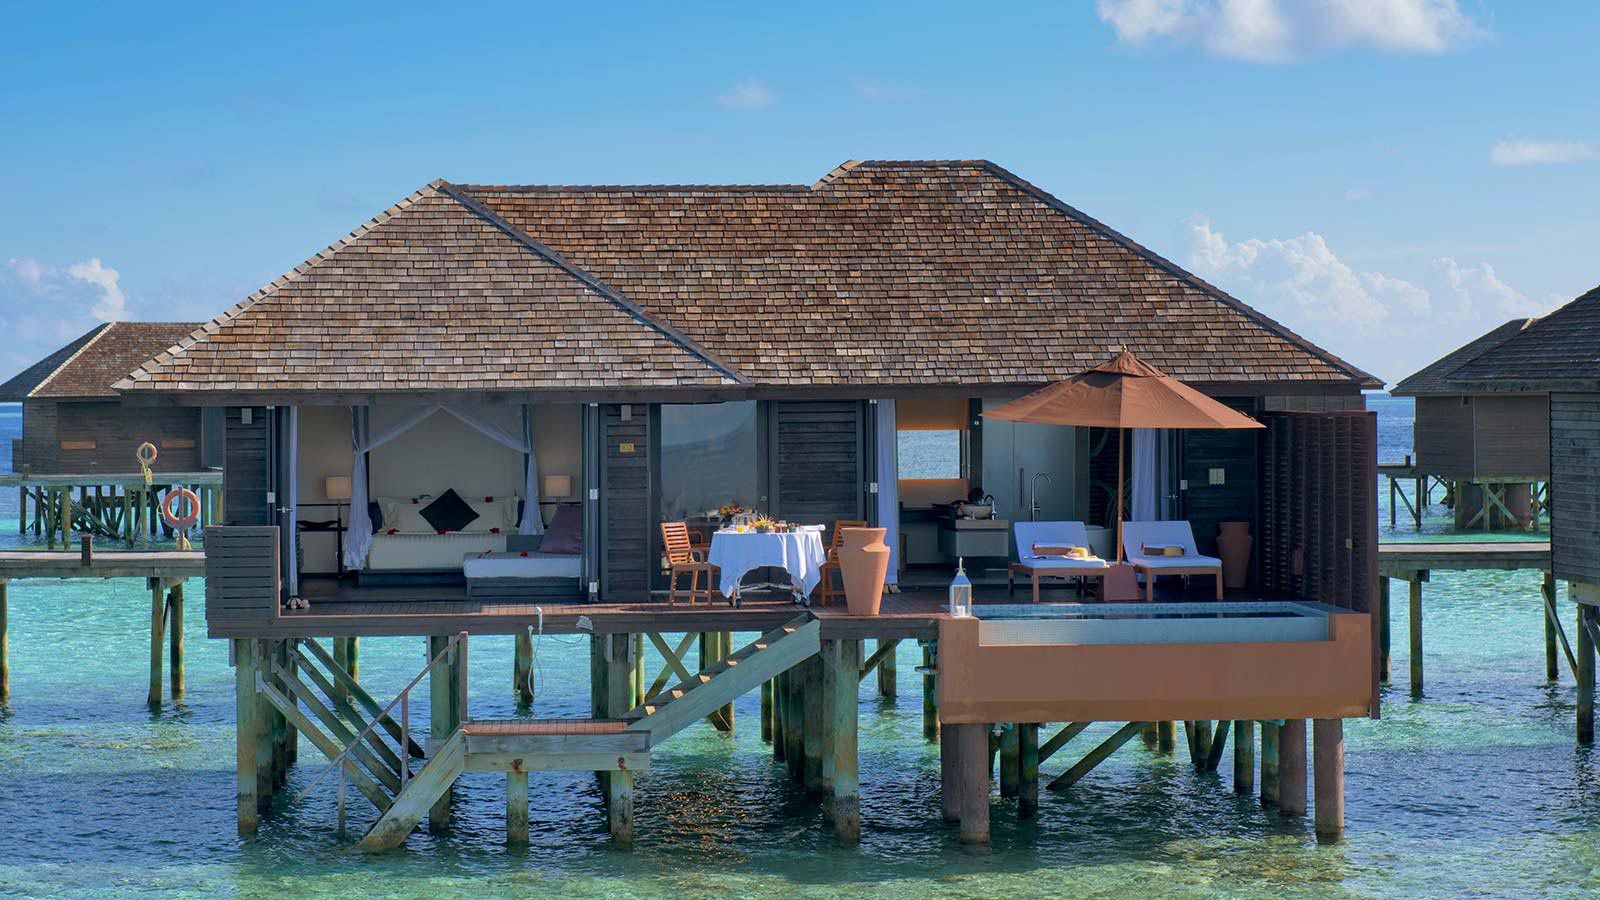 Deluxe Water Villas Lily Beach Resort Amp Spa Lily Beach